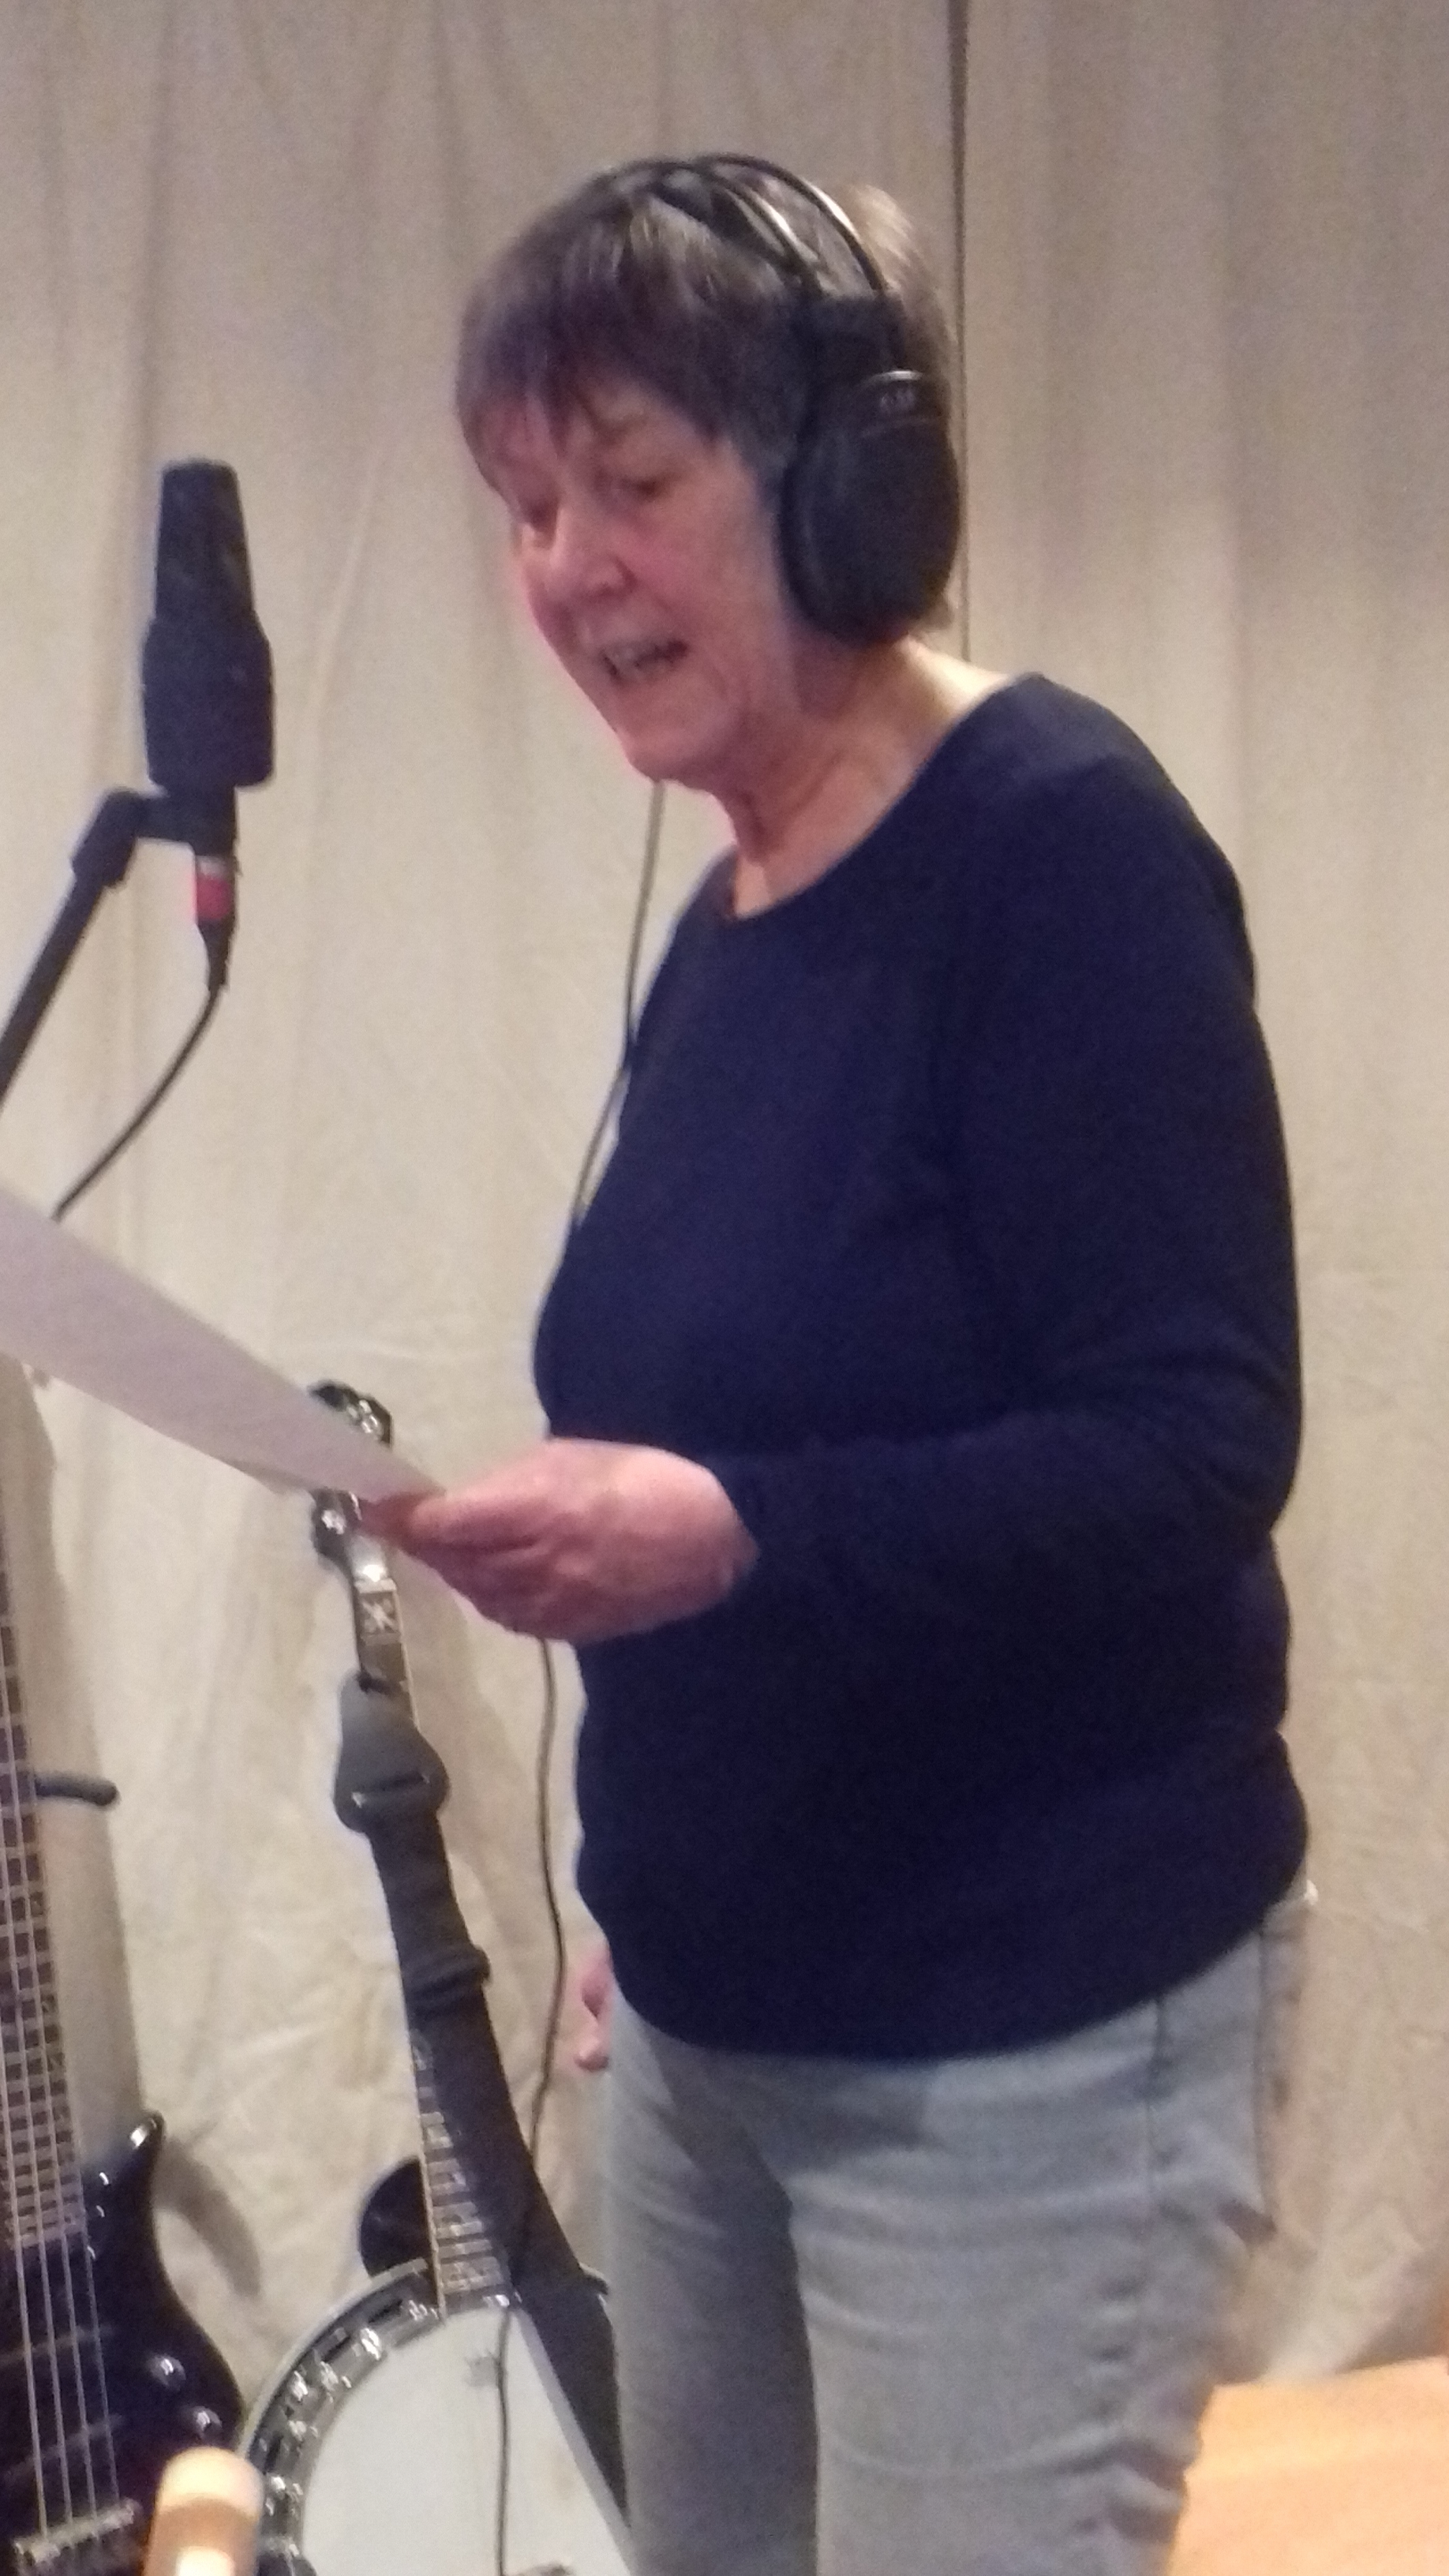 lillian recording